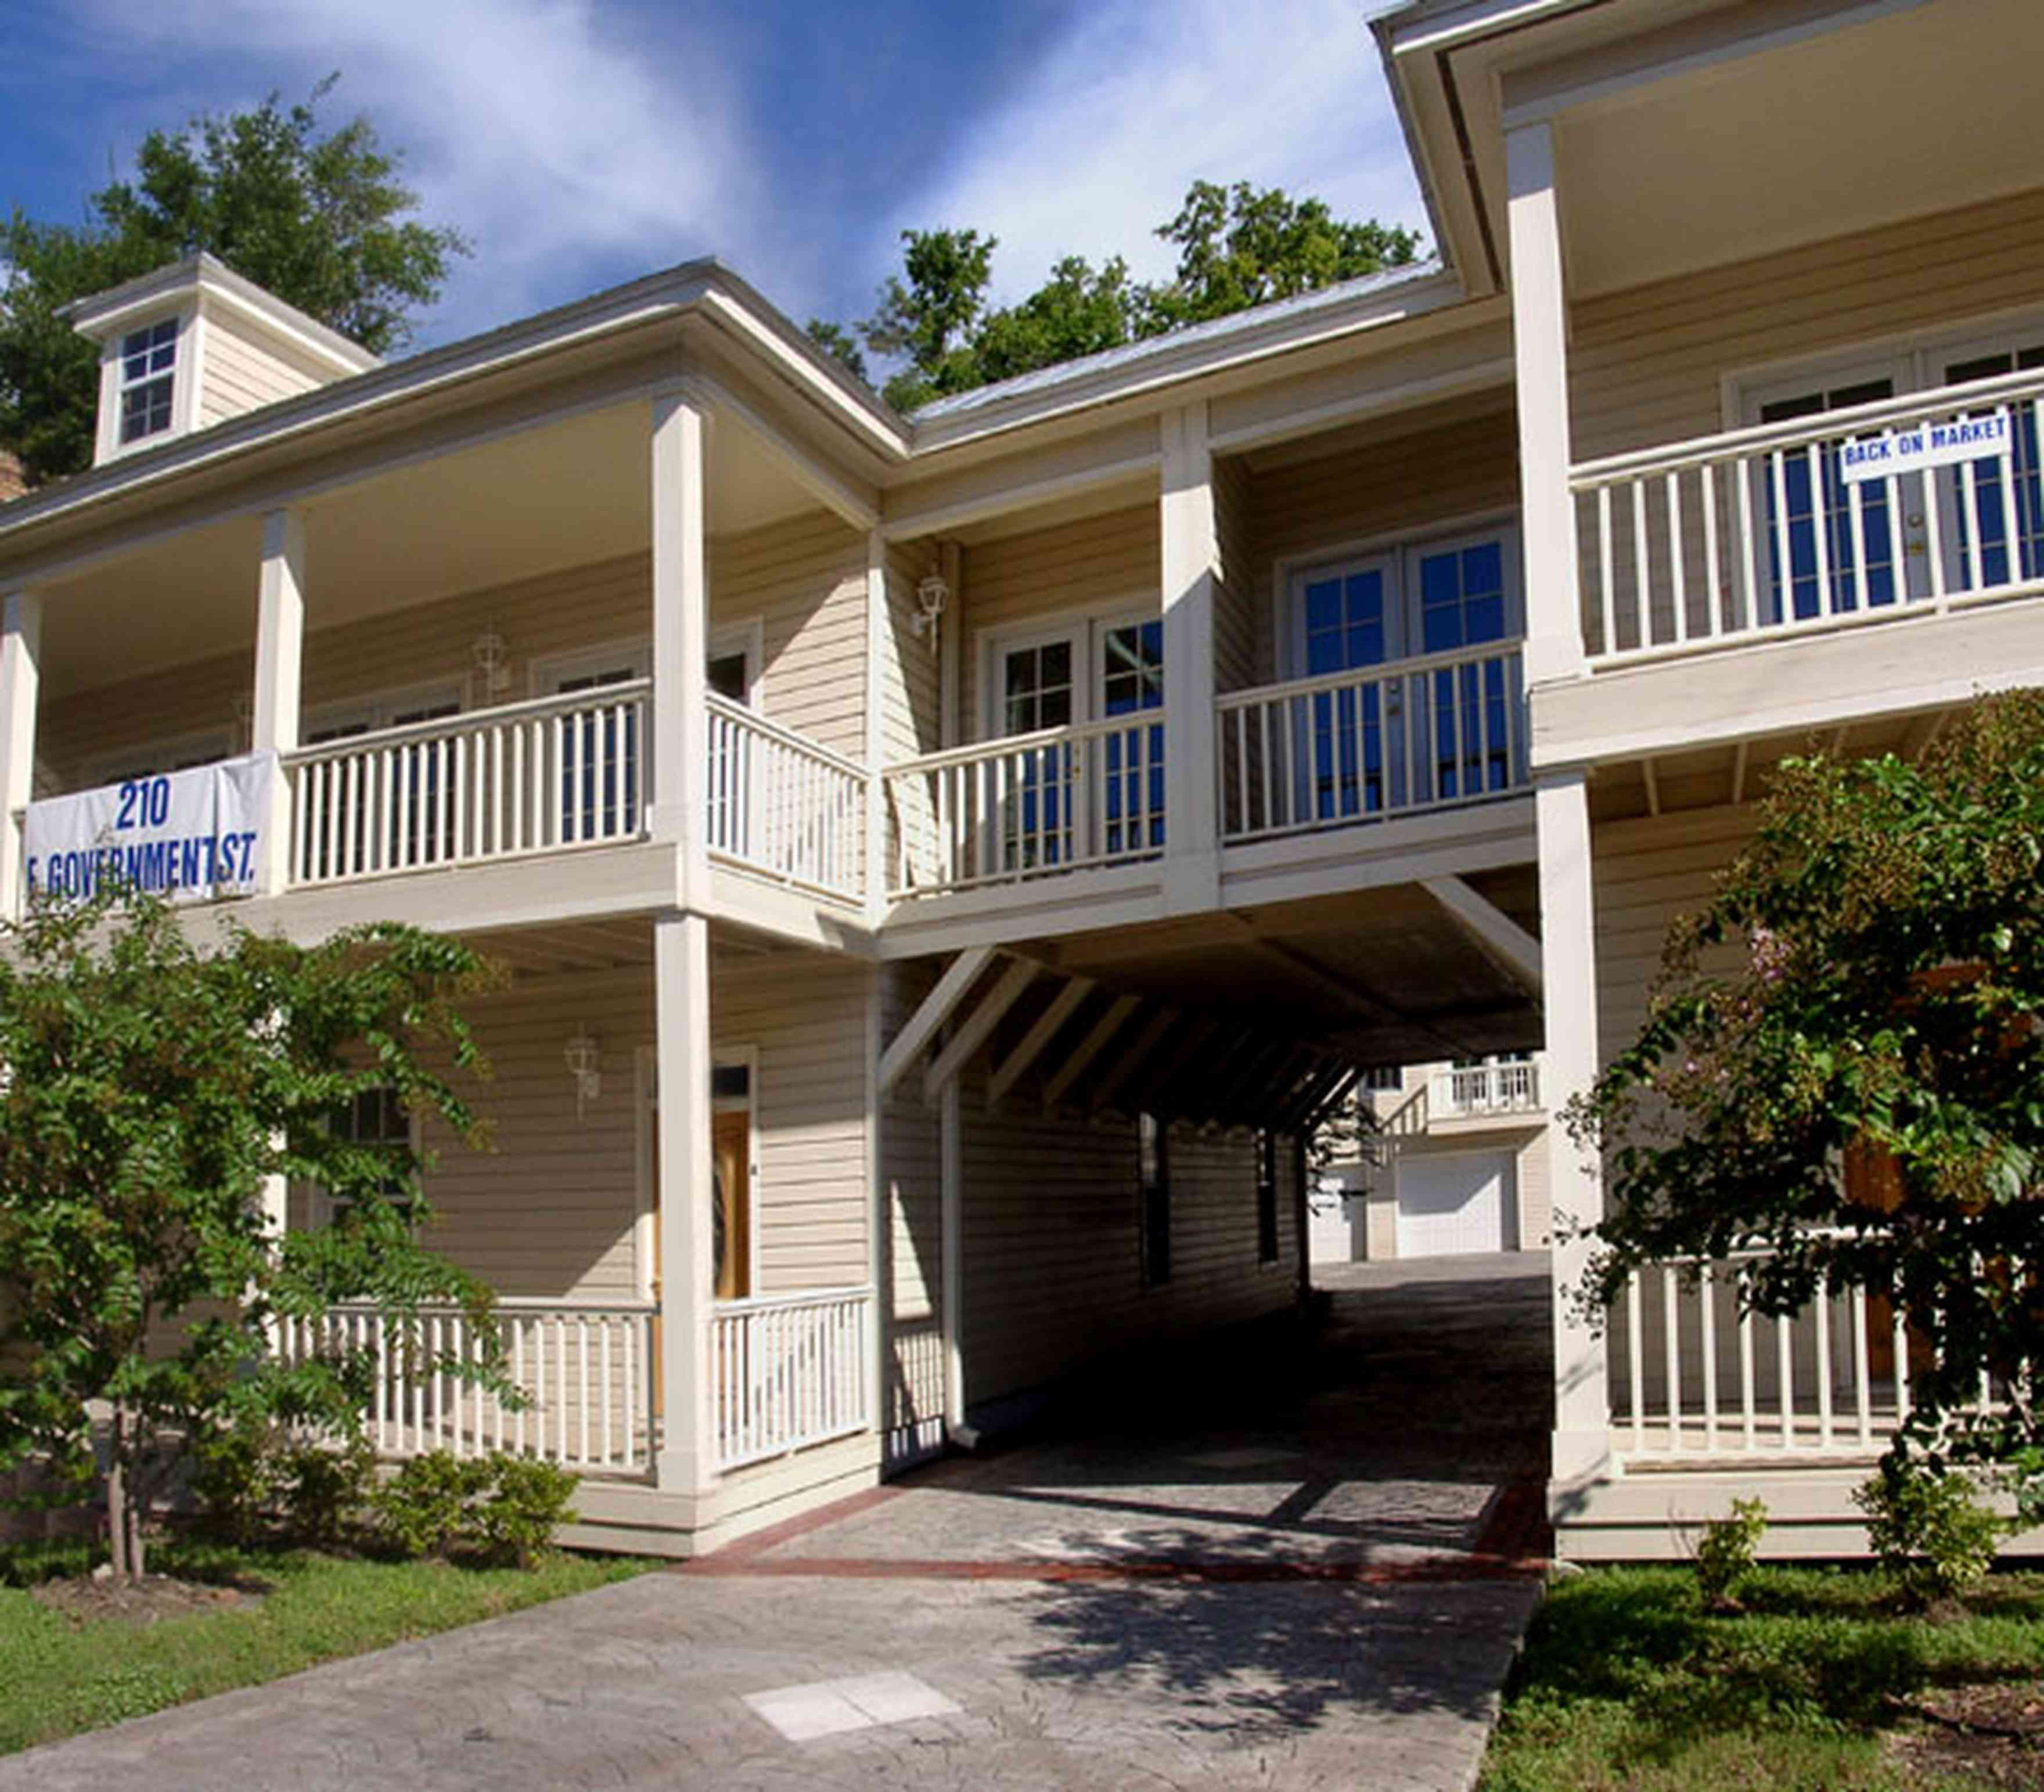 Pensacola:-Seville-Historic-District:-210-East-Government-Street_01.jpg:  multi-use building, crepe myrtle tree, condo, porches, french doors, carriage house, victorian building